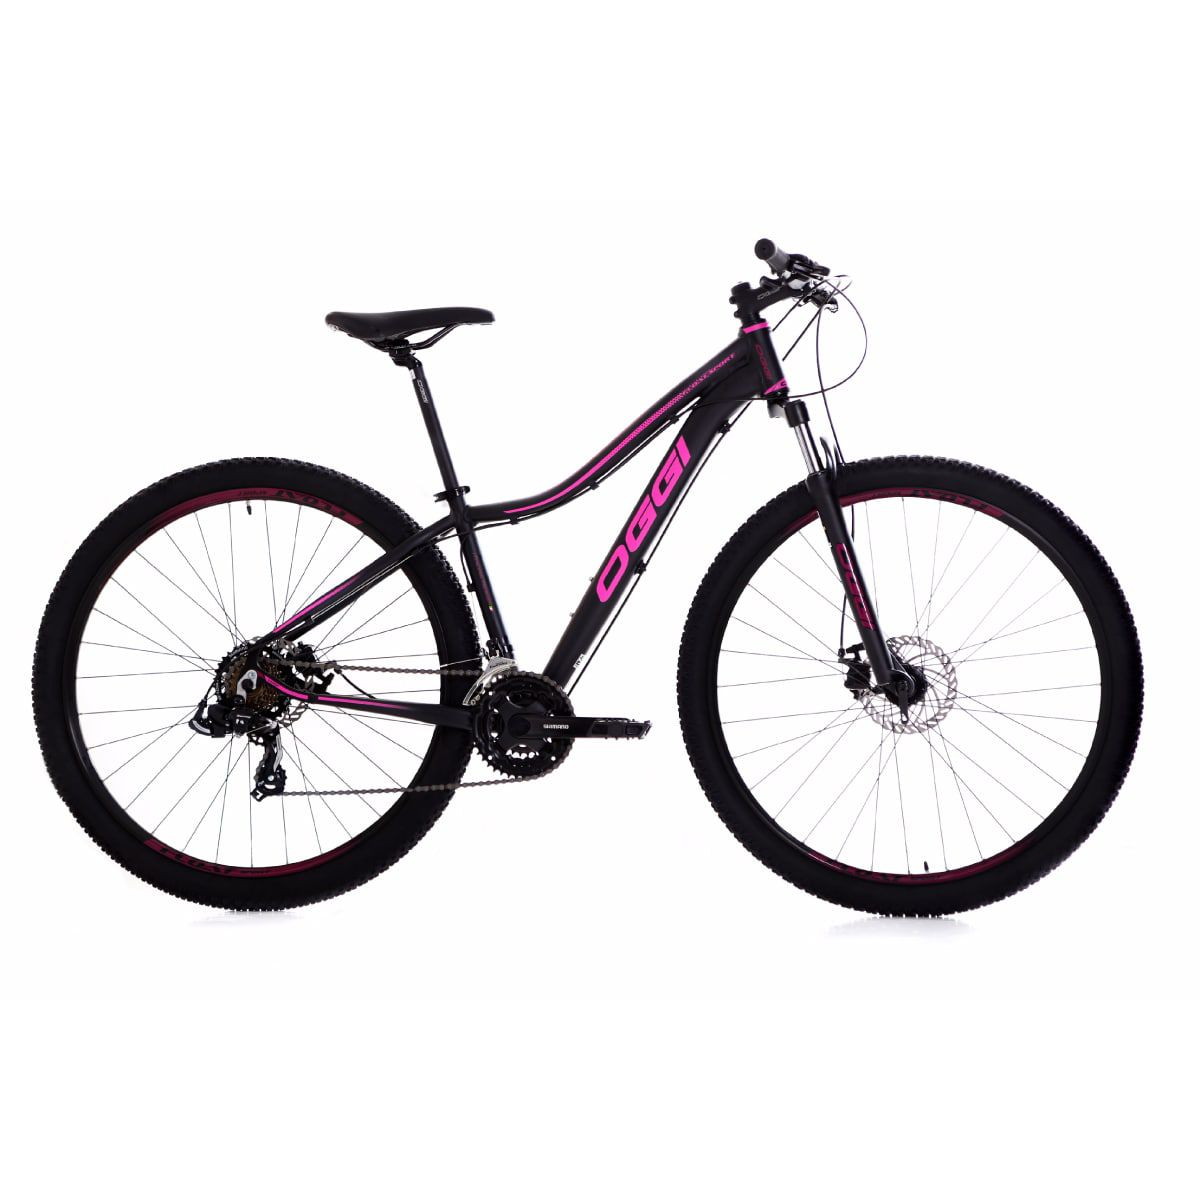 Bike Oggi Float Sport 2020 21v Freio a Disco Shimano